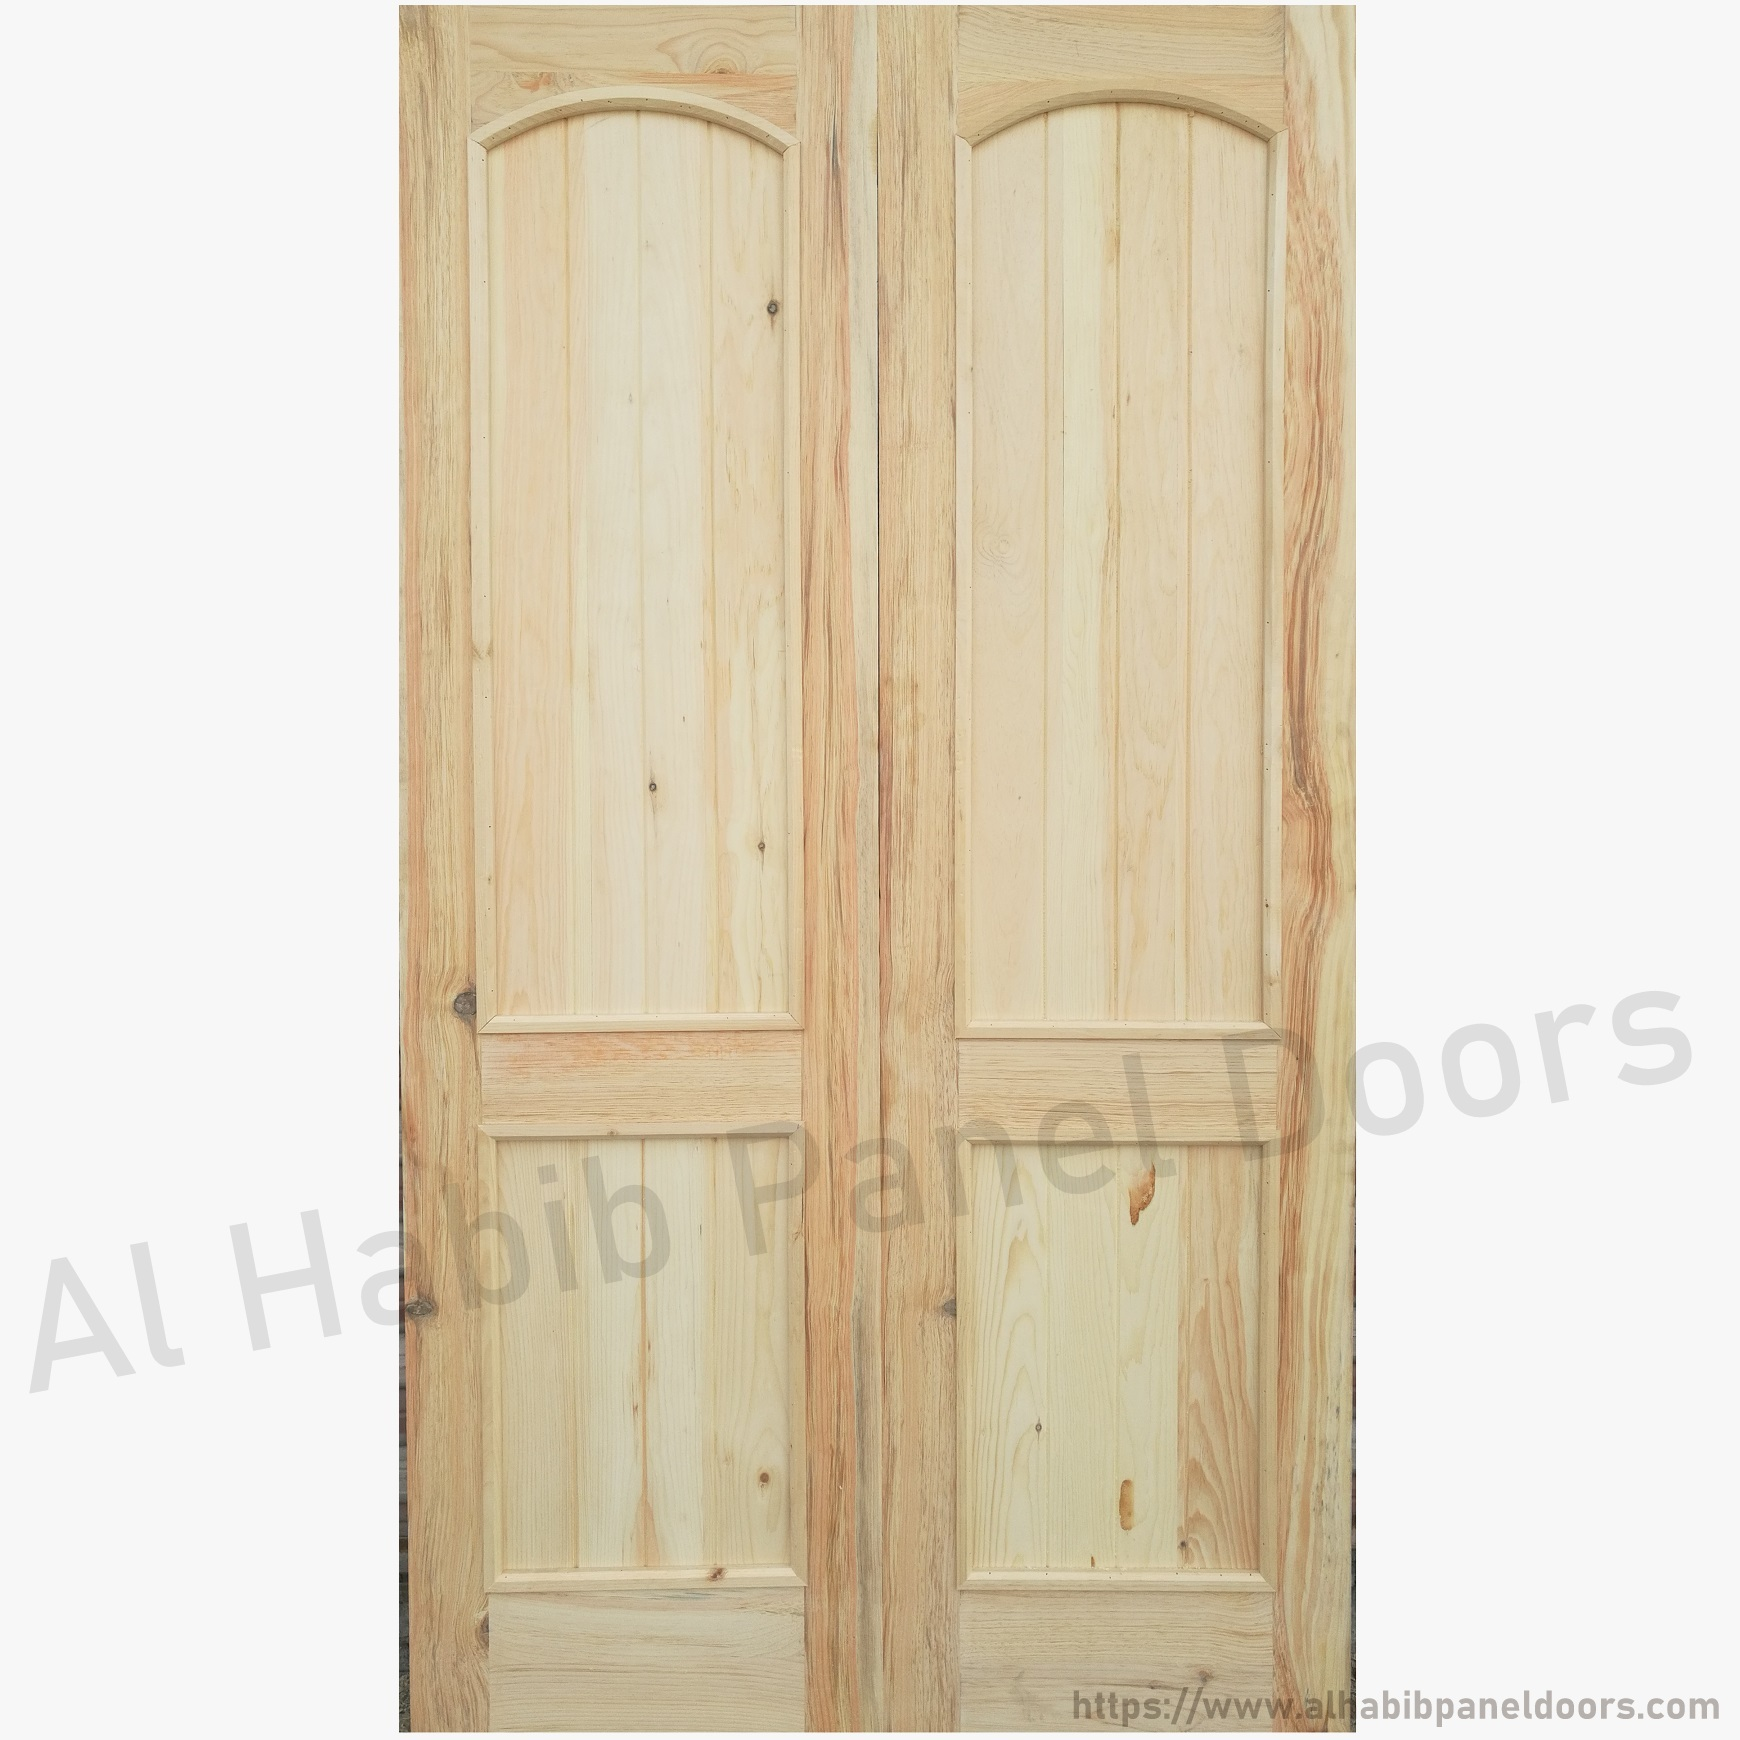 Main doors doors al habib panel doors for Office main door design